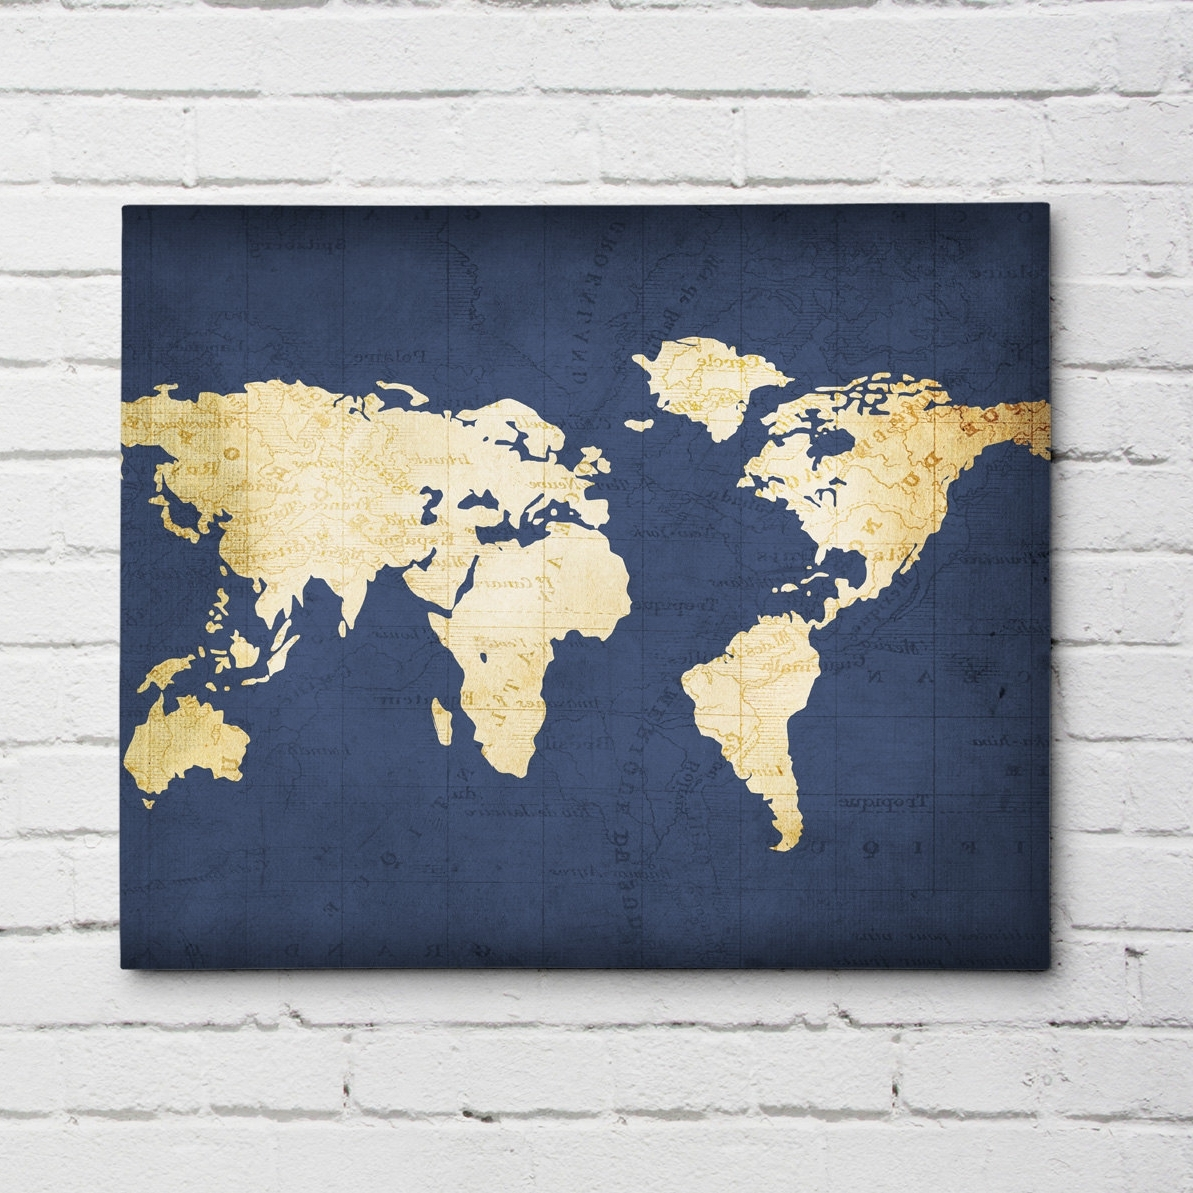 Navy Blue Wall Art Intended For Fashionable Navy Blue World Map (Gallery 2 of 15)